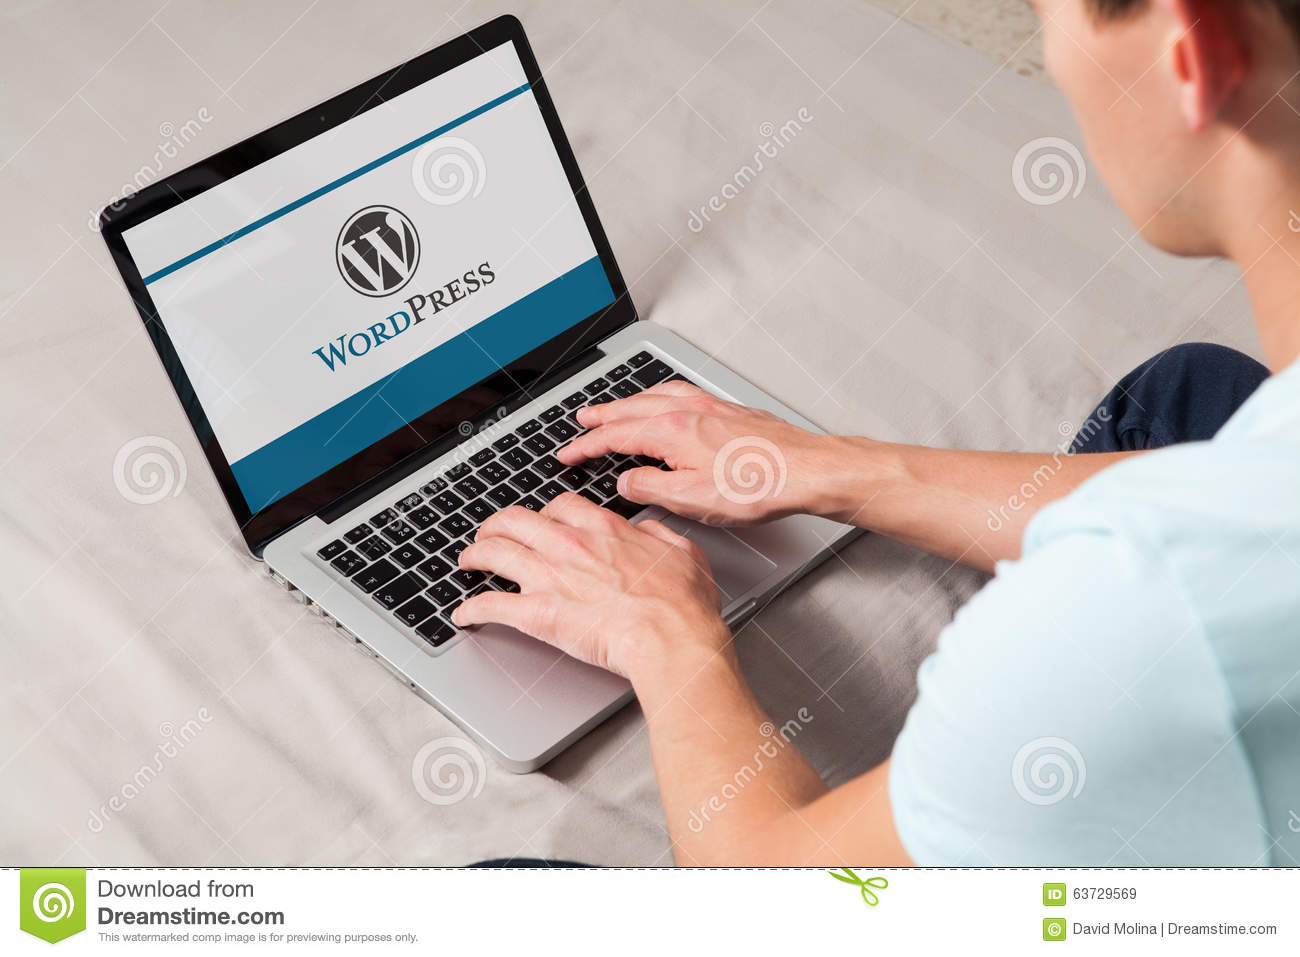 MALAGA, SPAIN - NOVEMBER 10, 2015: Wordpress brand logo on computer screen. Man typing on the keyboard.